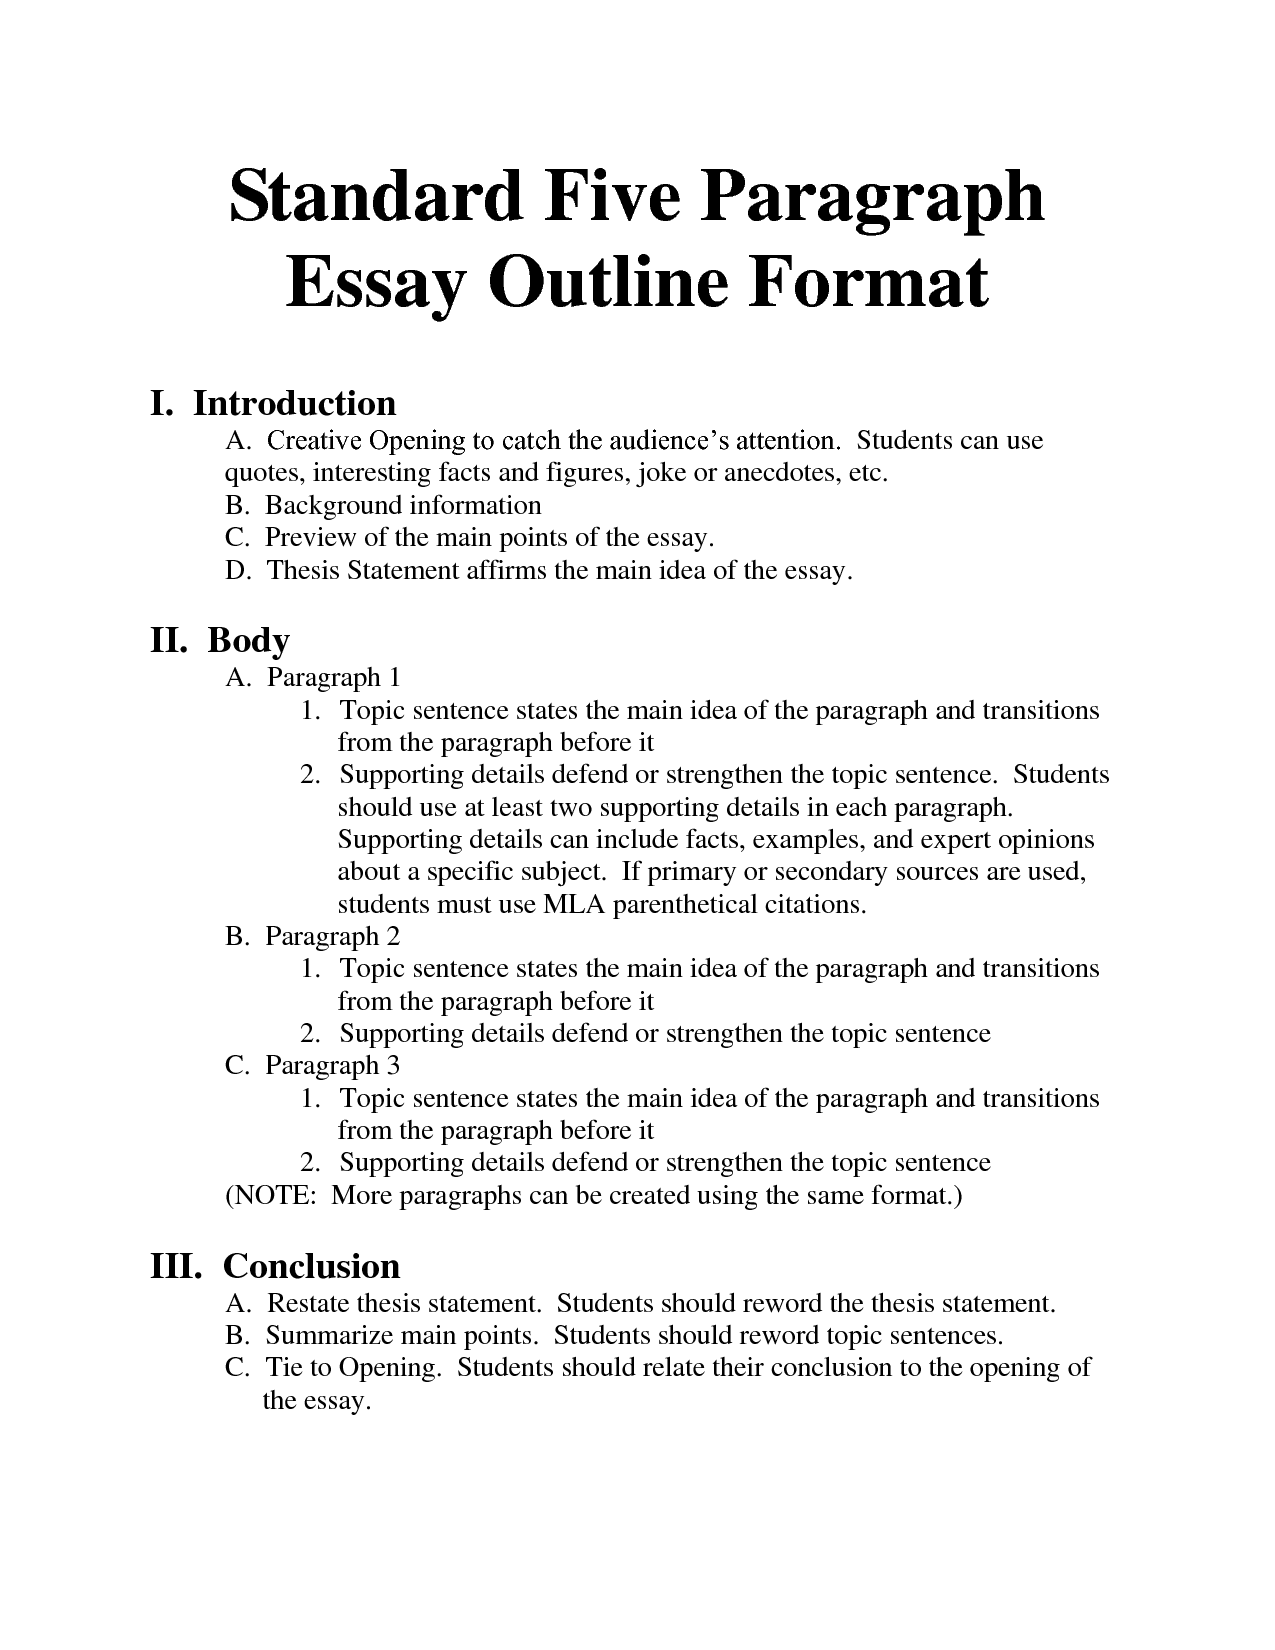 writing an introduction for an essay university This resource begins with a general description of essay writing and moves to process of essay composition through the introduction of purdue university.